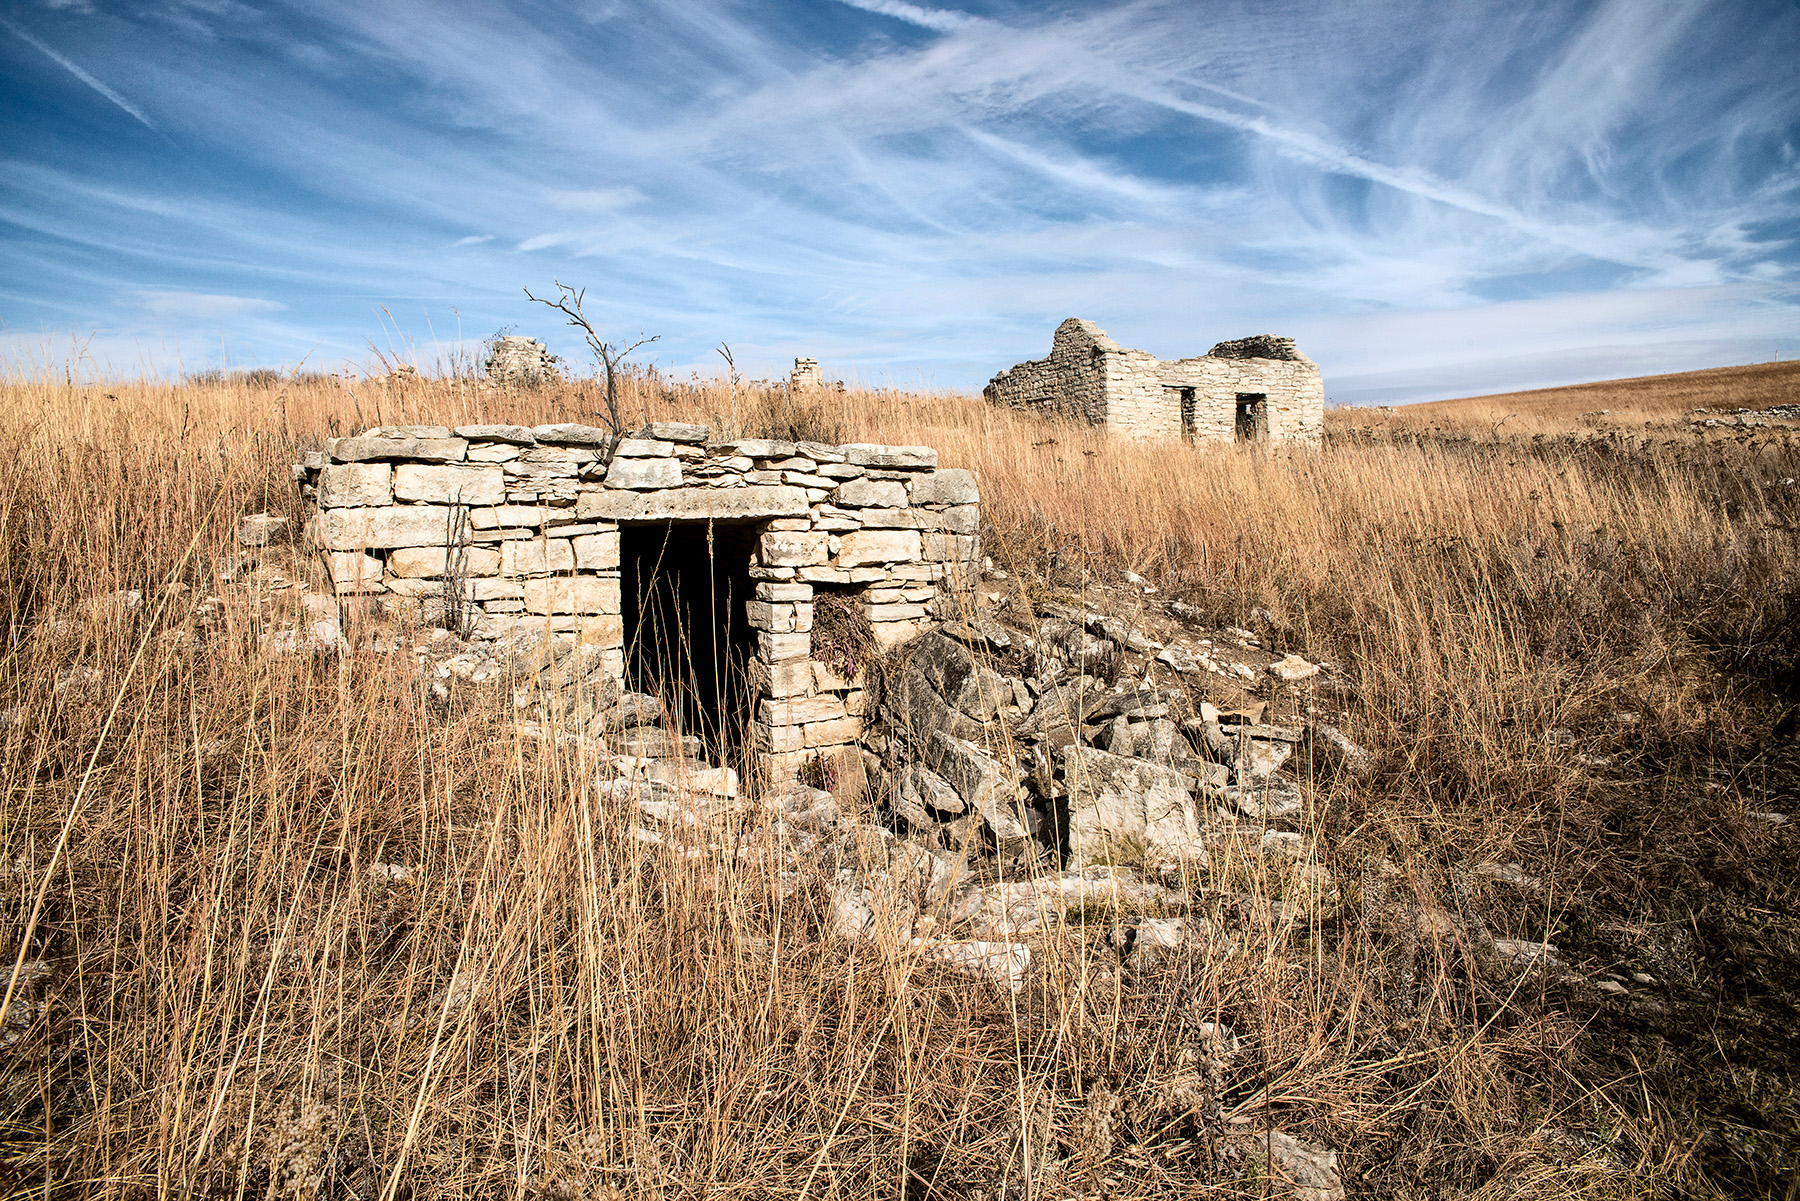 View photographer Tom Parish's unique views of Flint Hills caves and cellars.